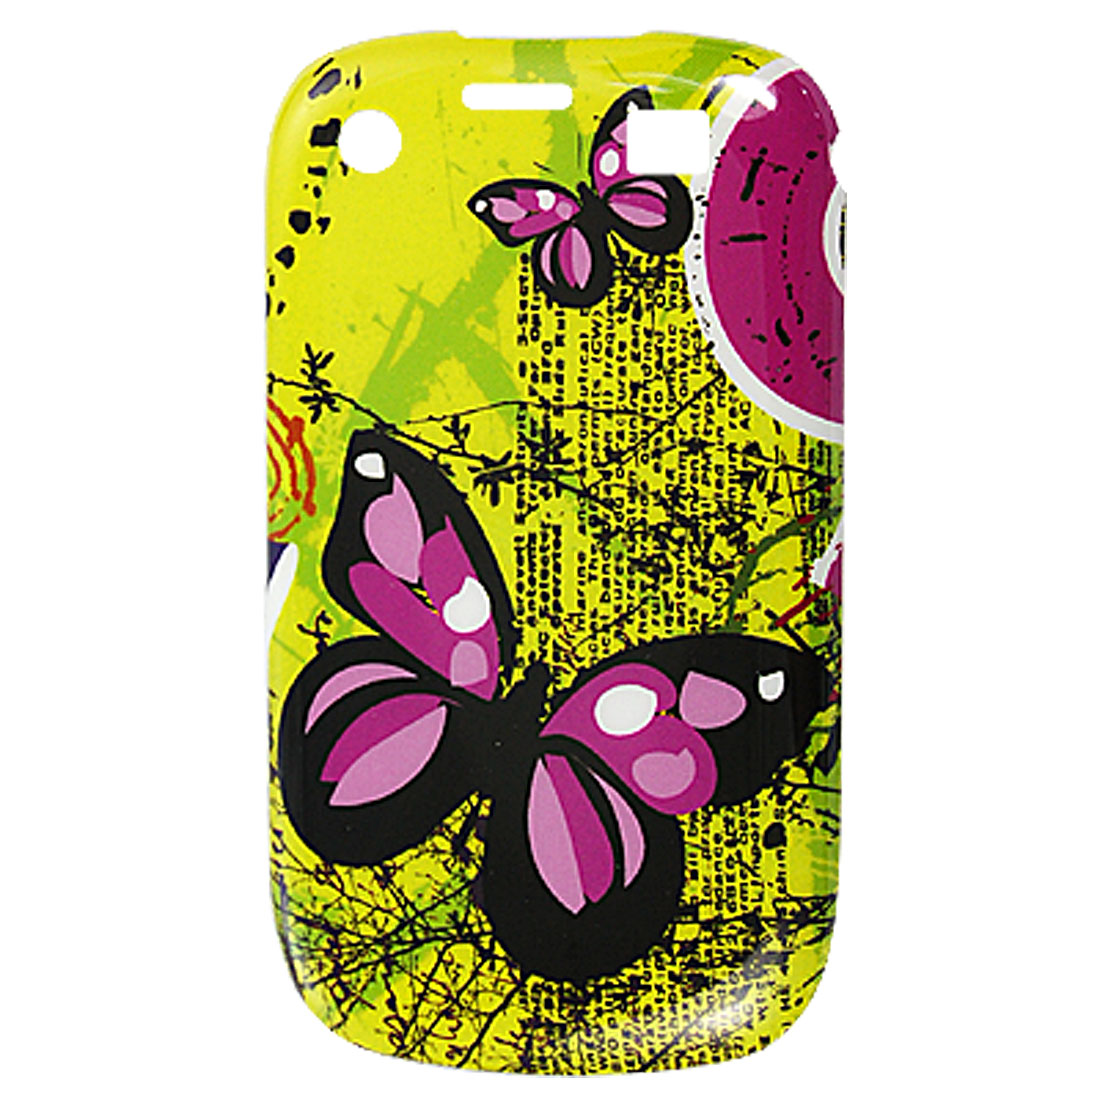 Fuchsia Black Butterfly Print Plastic IMD Back Case for Blackberry 9700 9020